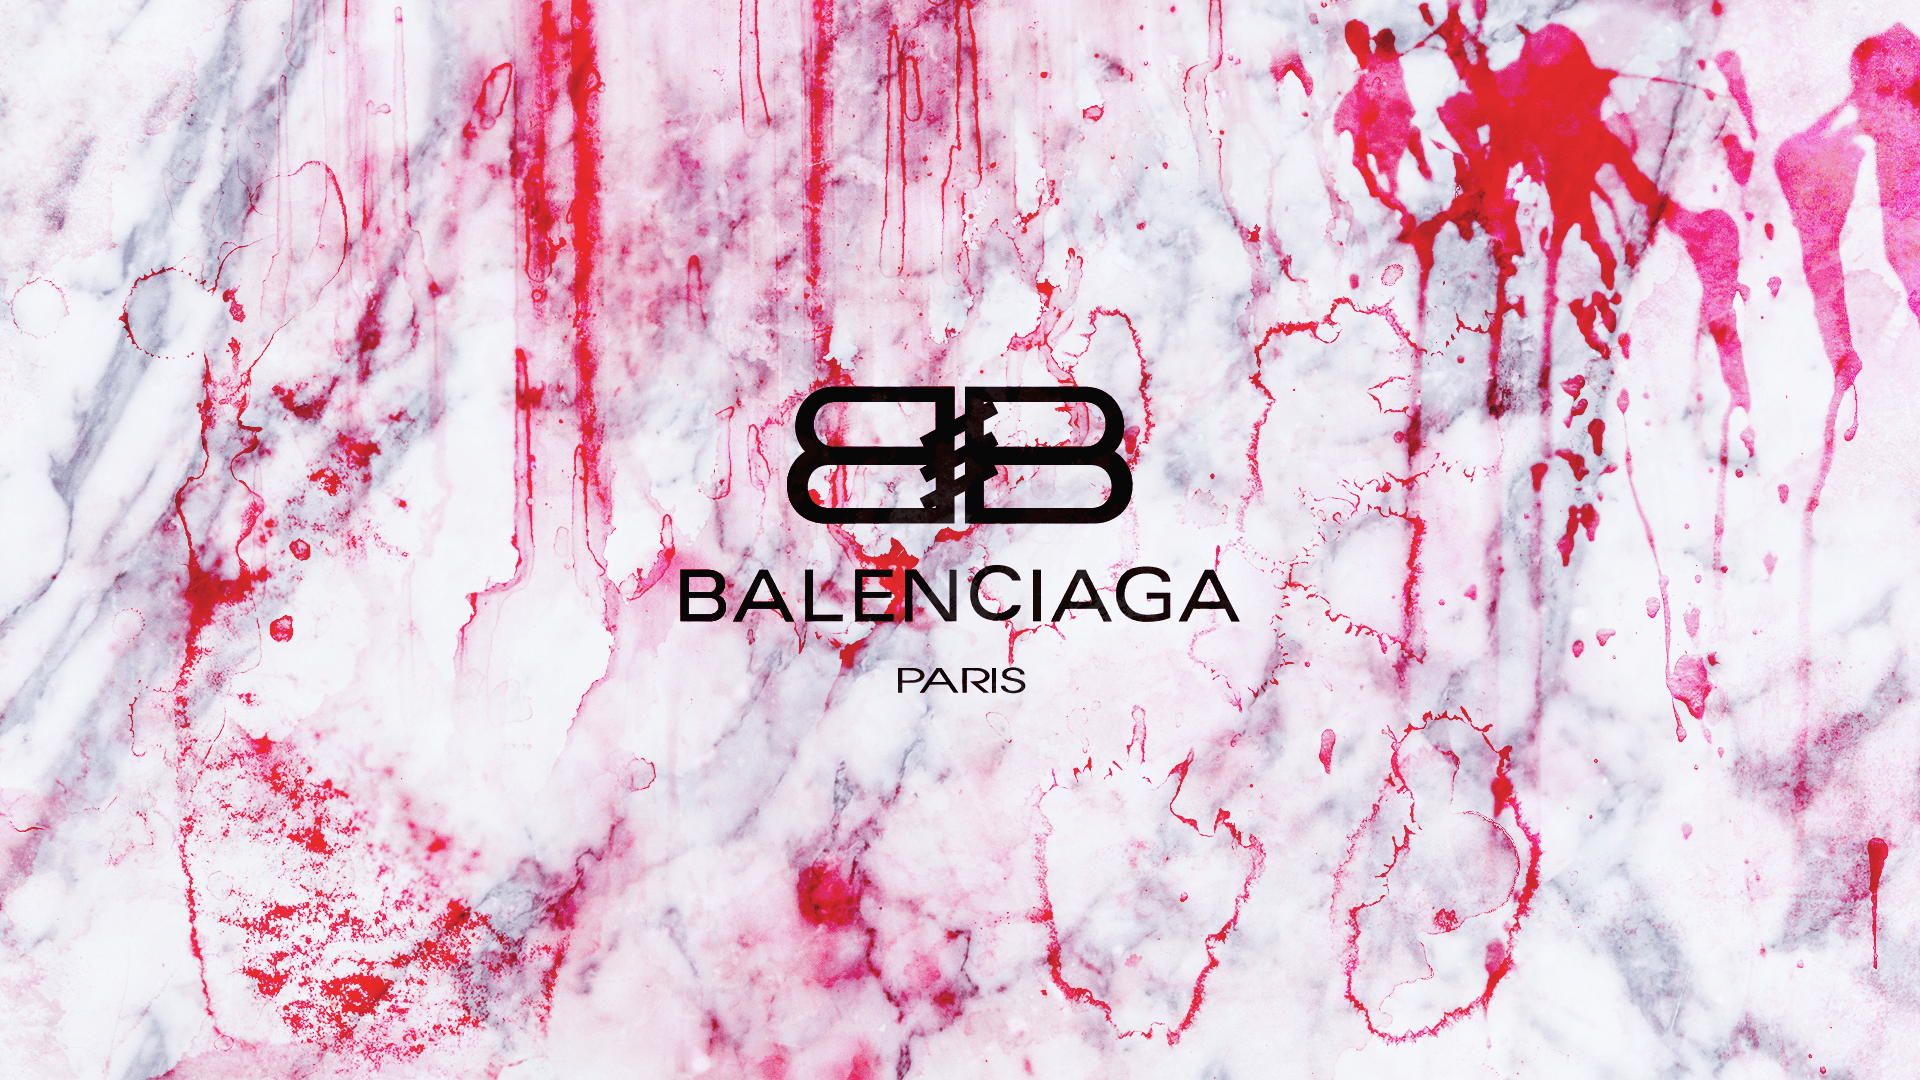 balenciaga marble brand wallpapers blood 4k wallhaven backgrounds px cc site script communication western text wallhere